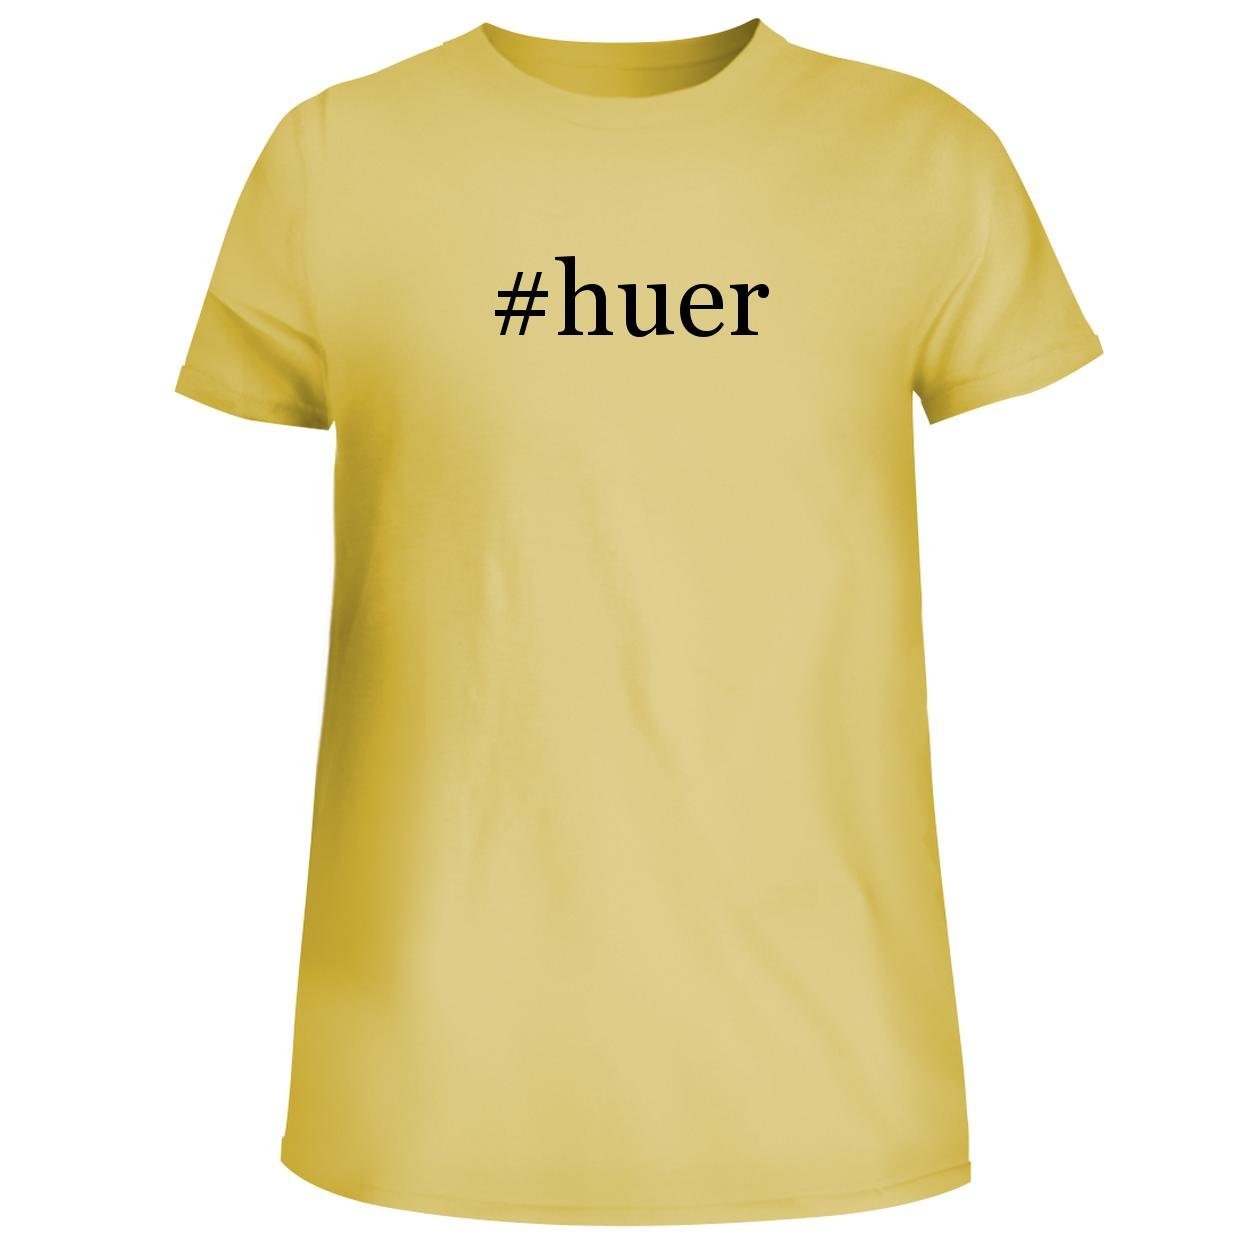 BH Cool Designs #Huer - Cute Women's Junior Graphic Tee, Yellow, Small